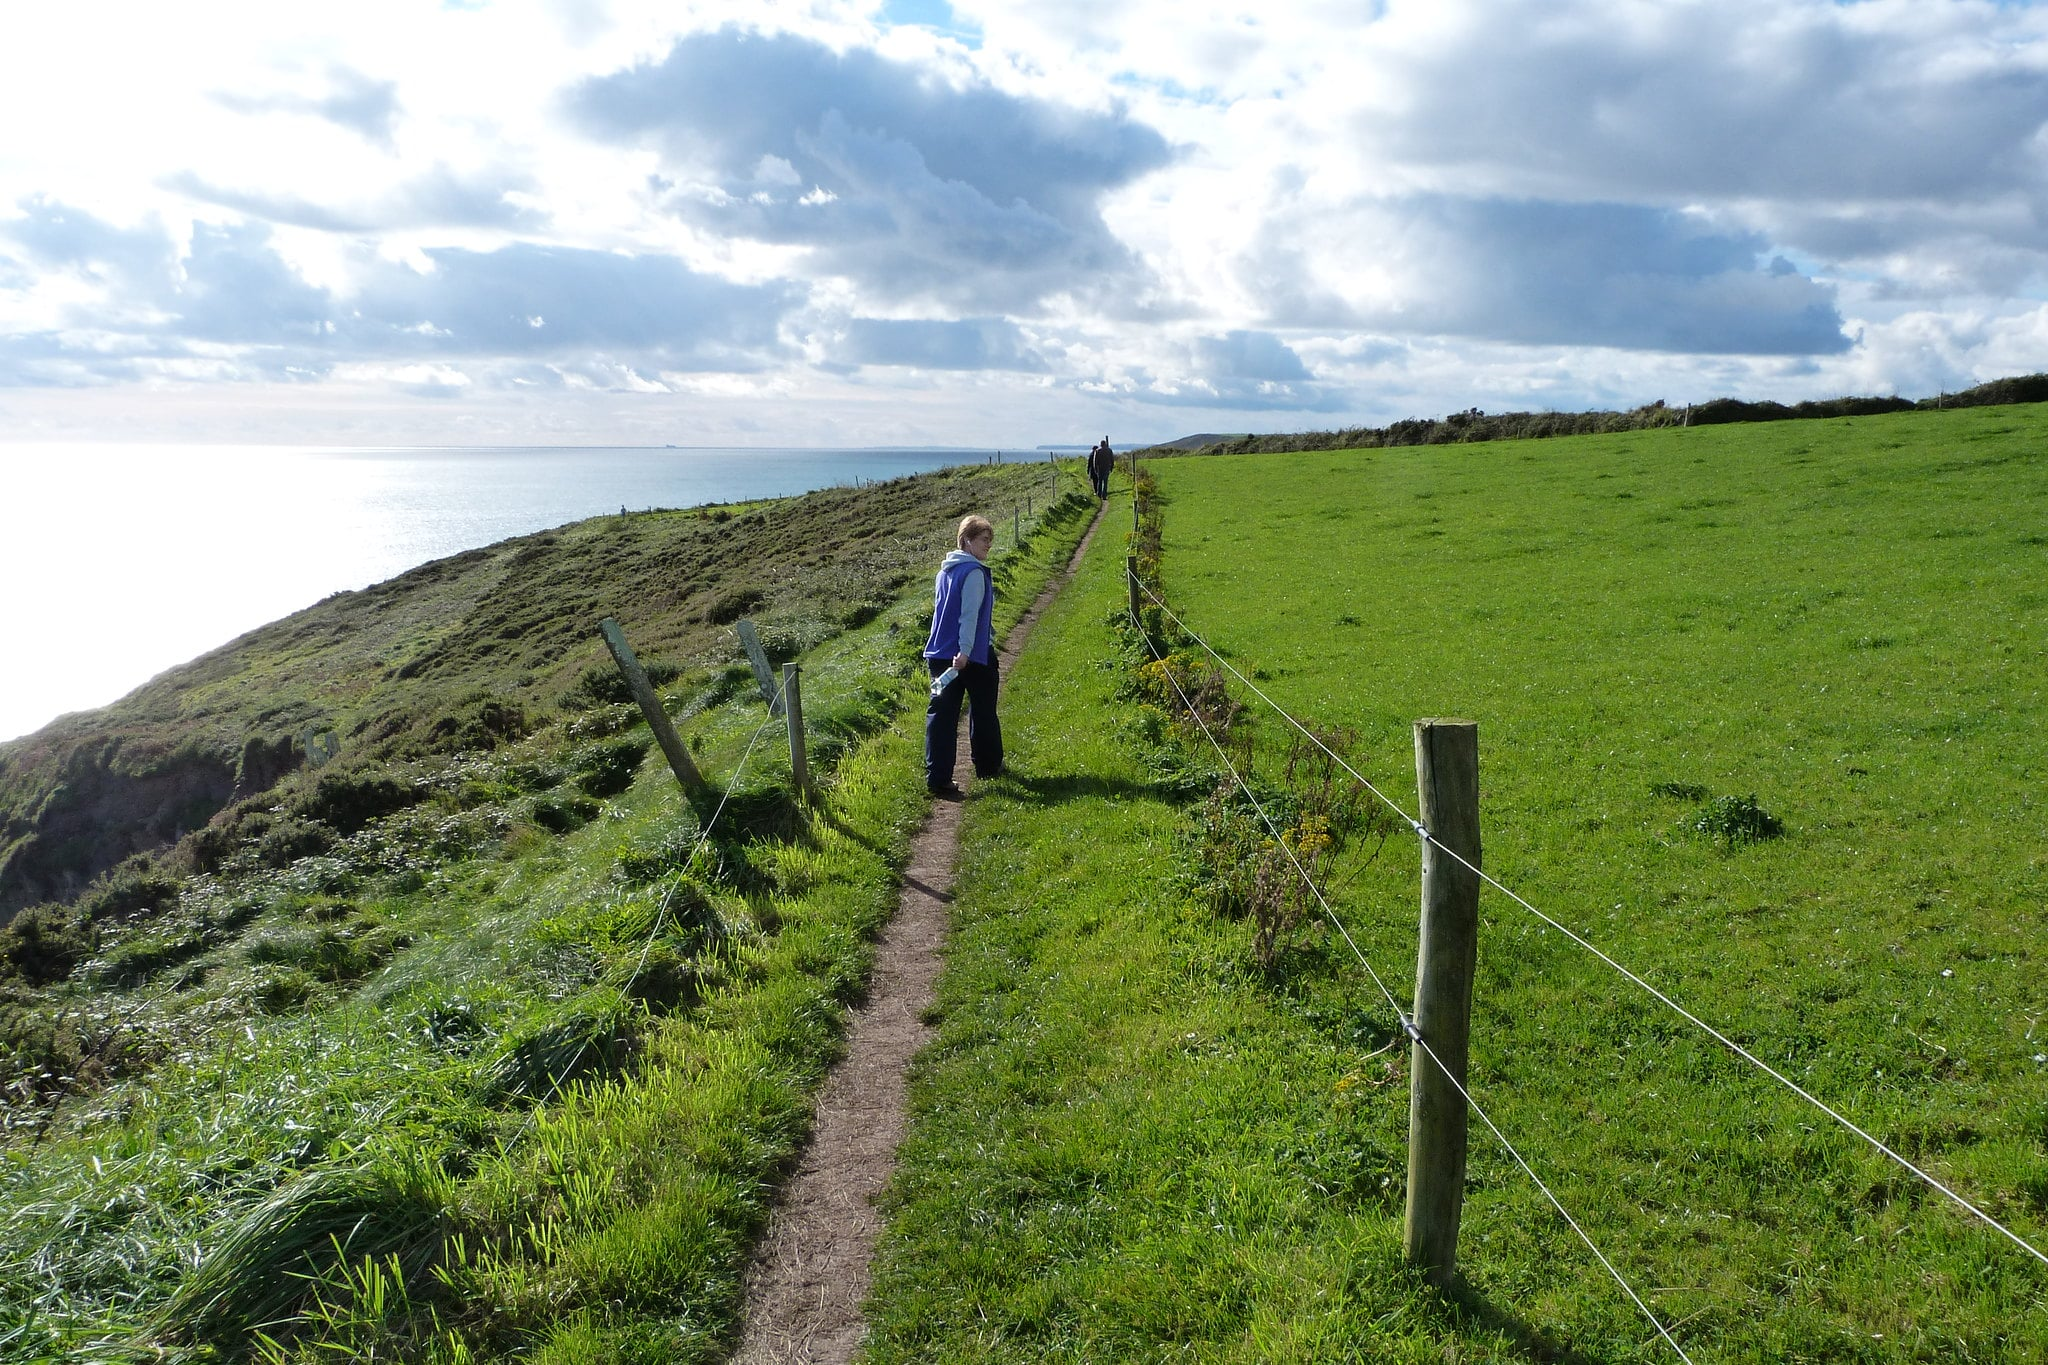 Hiking along Ballycotton Cliff walk is a great thing to do in Cork Ireland